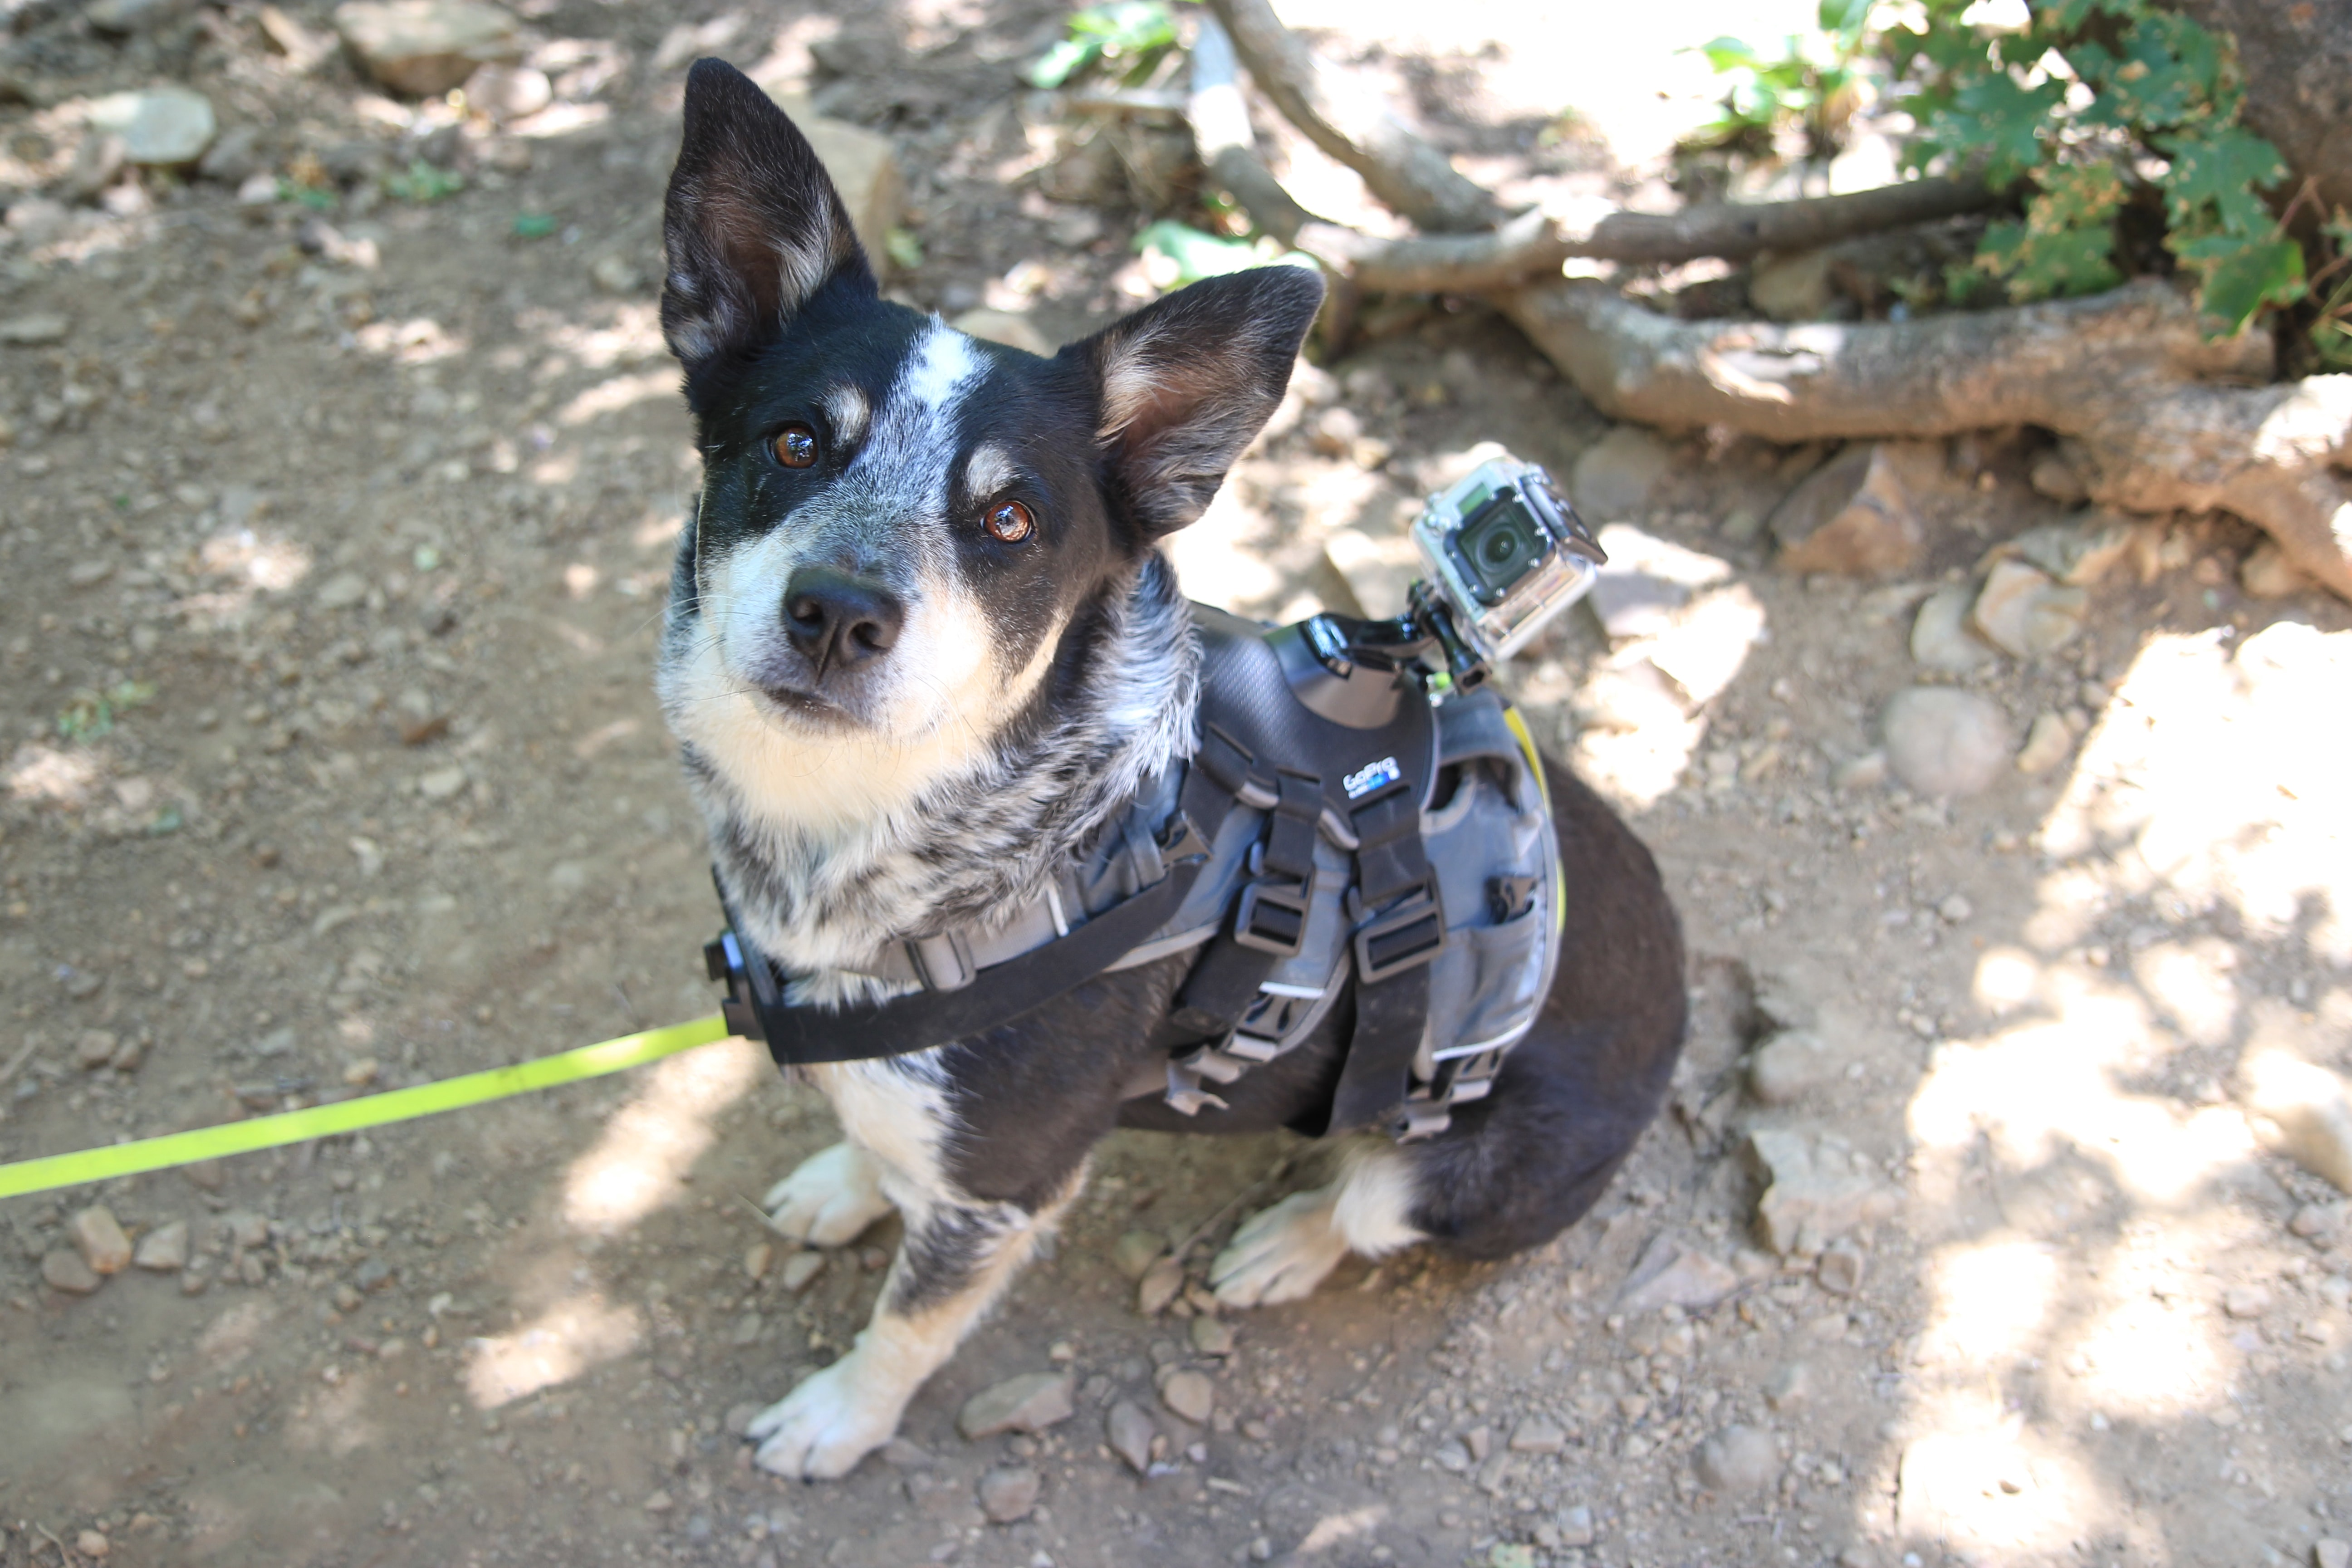 A vested dog tied to a leash, sitting on a hiking trail.